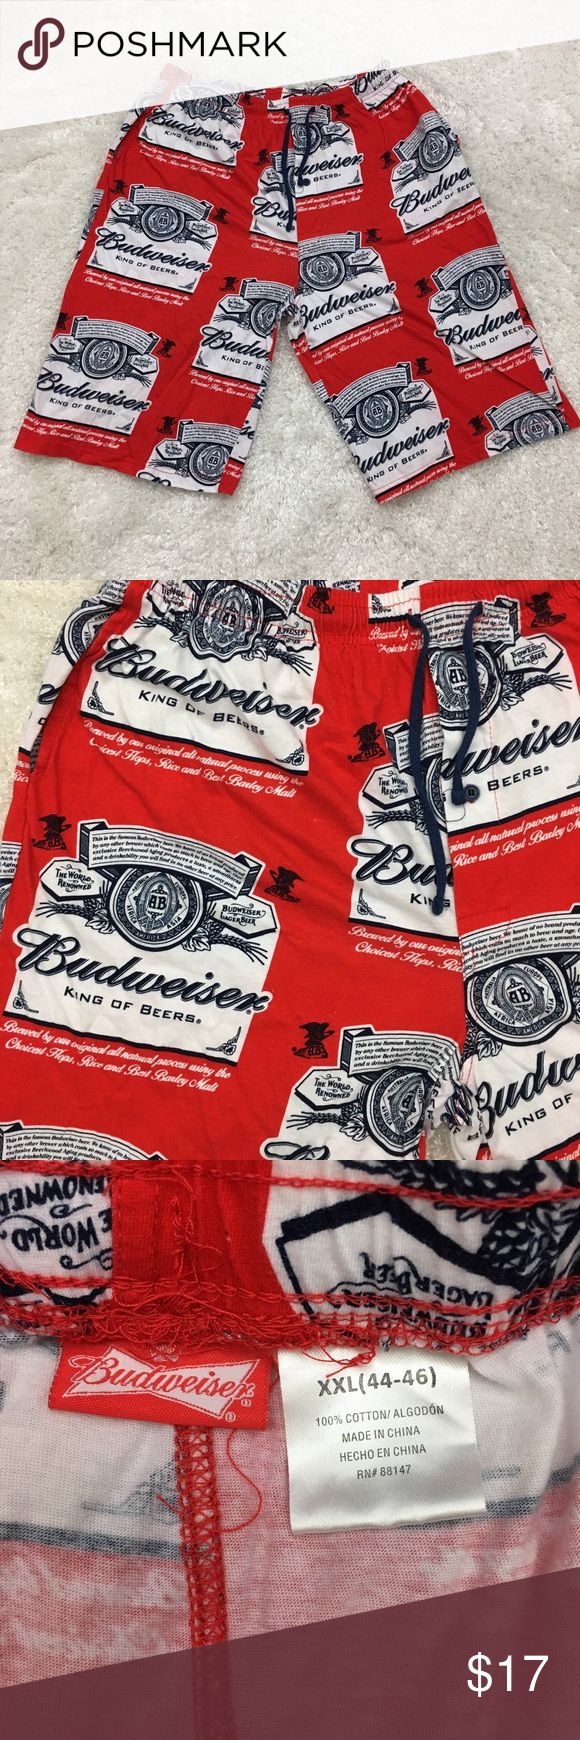 """Budweiser Beer men's lounge shorts, pajama shorts Budweiser Beer logo men's lounge/sleeping shorts  Size XXL 44-46 Waist laid flat 16"""" expandable ***Fully expanded waist is 25""""*** Rise 14"""" Seam 12""""  Good condition.  No stains or holes.  Freshly washed.    Please see all pictures for details or ask questions prior to purchase to avoid returns.  Check out my store for more items on sale! Budweiser Beer Shorts"""